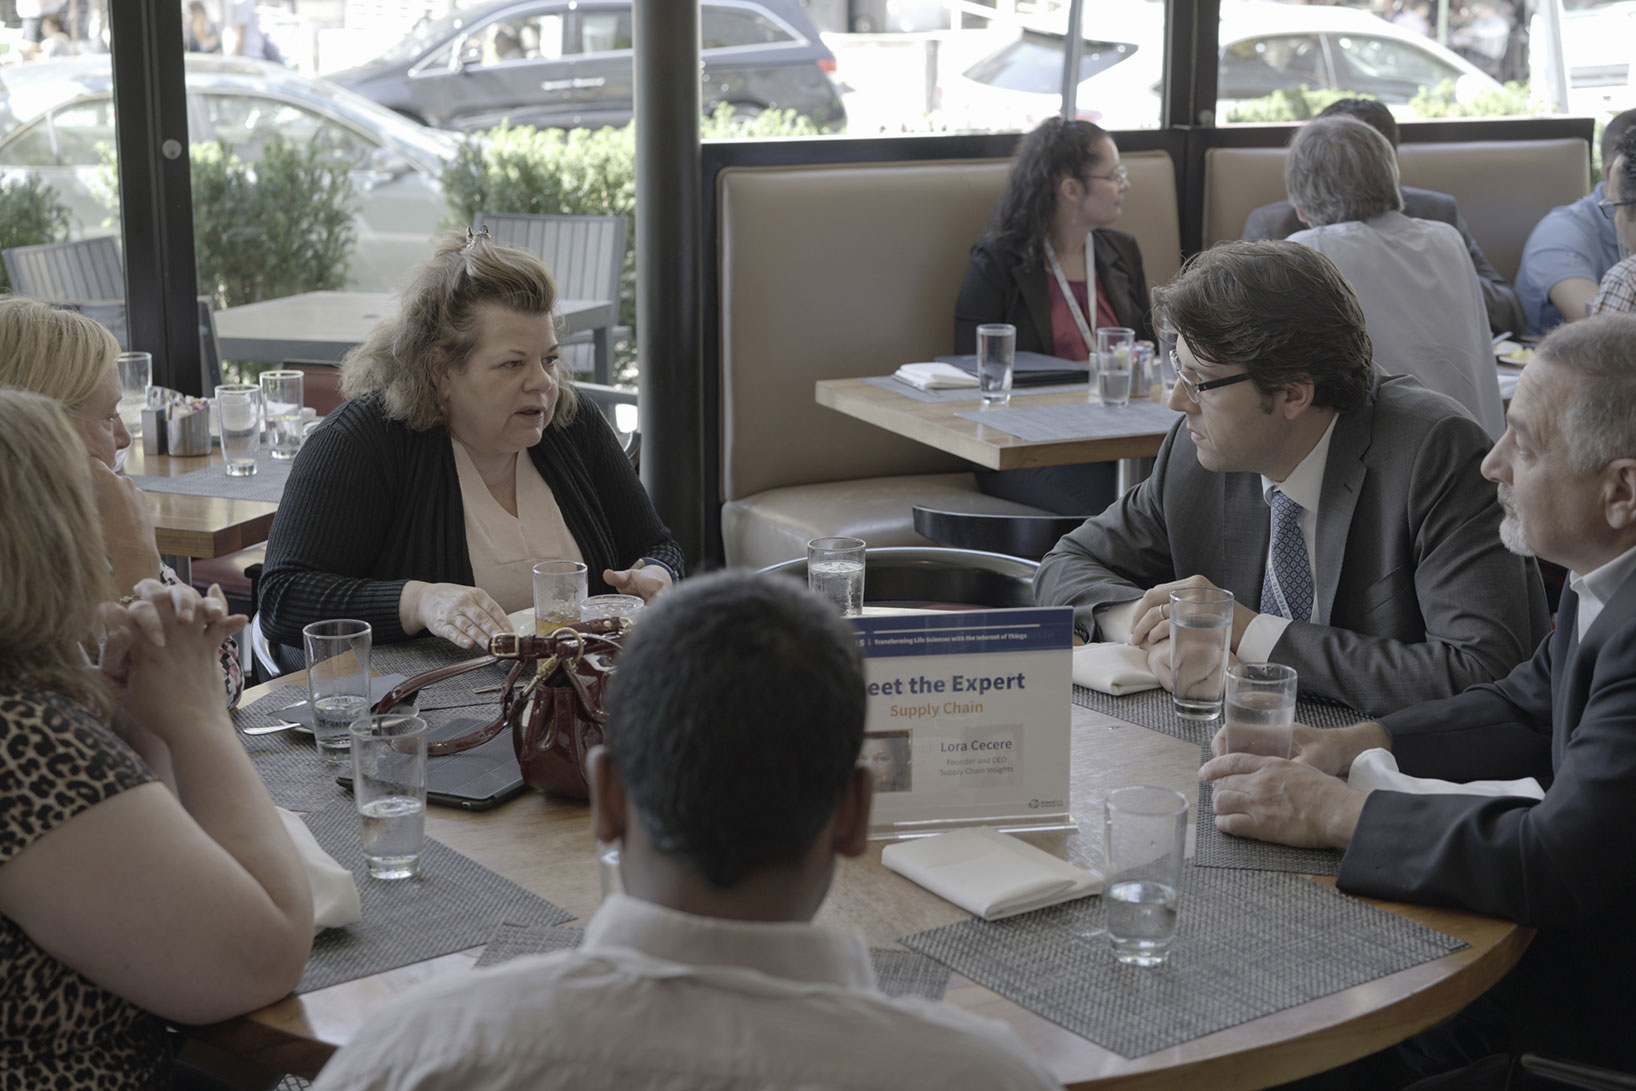 Lora Cecere engages with the other attendees at her table during the Meet the Experts lunch at TraceLink's NEXUS '15.